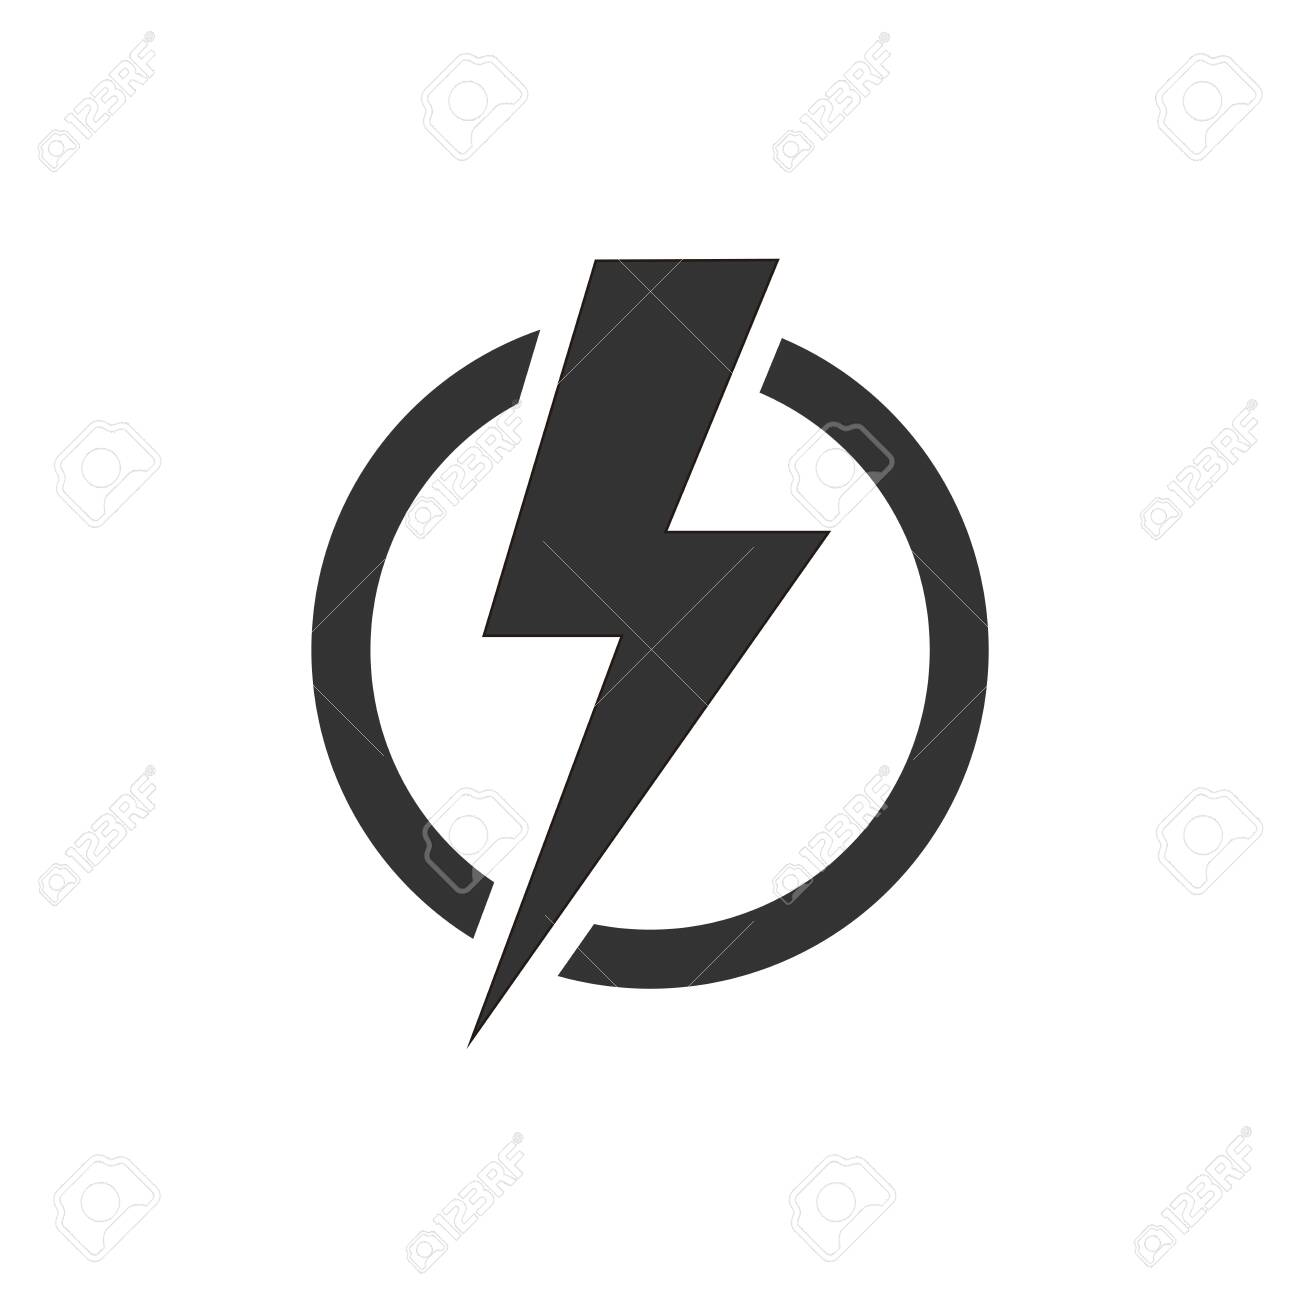 Lightning bolt in the circle graphic icon. Energy sign isolated on white background. Electric power symbol. Lightning bolt icon. - 152393244